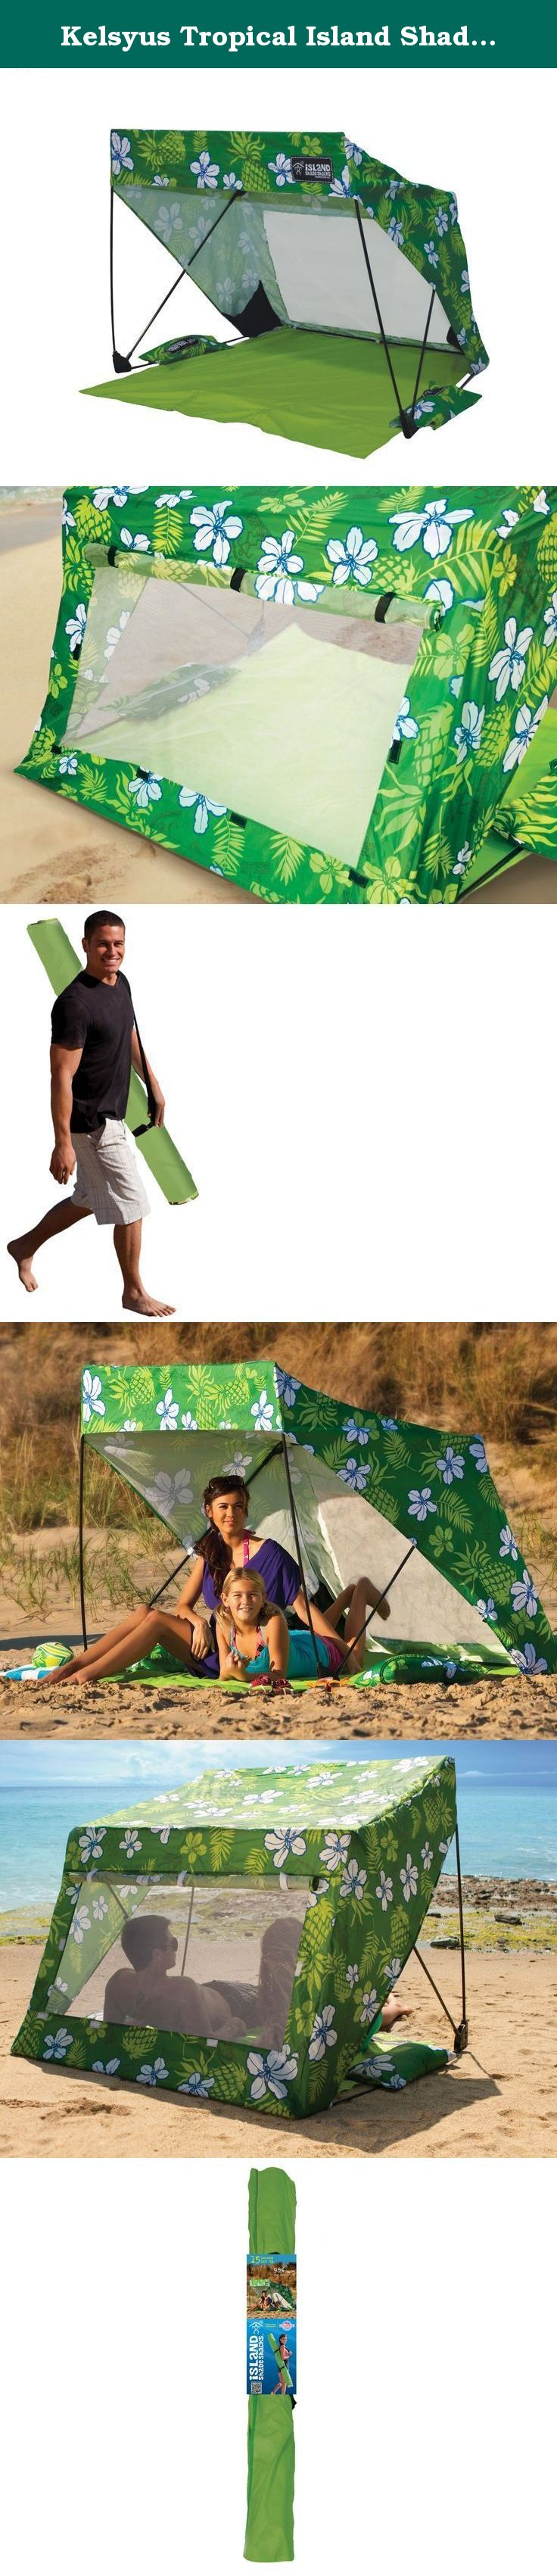 The Kelsyus Island Shade Shack makes beach and sideline shade cool! Invented by pro surfer Bobby Friedman this sun shelter is your solution for portable ... & Kelsyus Tropical Island Shade Shack. The Kelsyus Island Shade ...